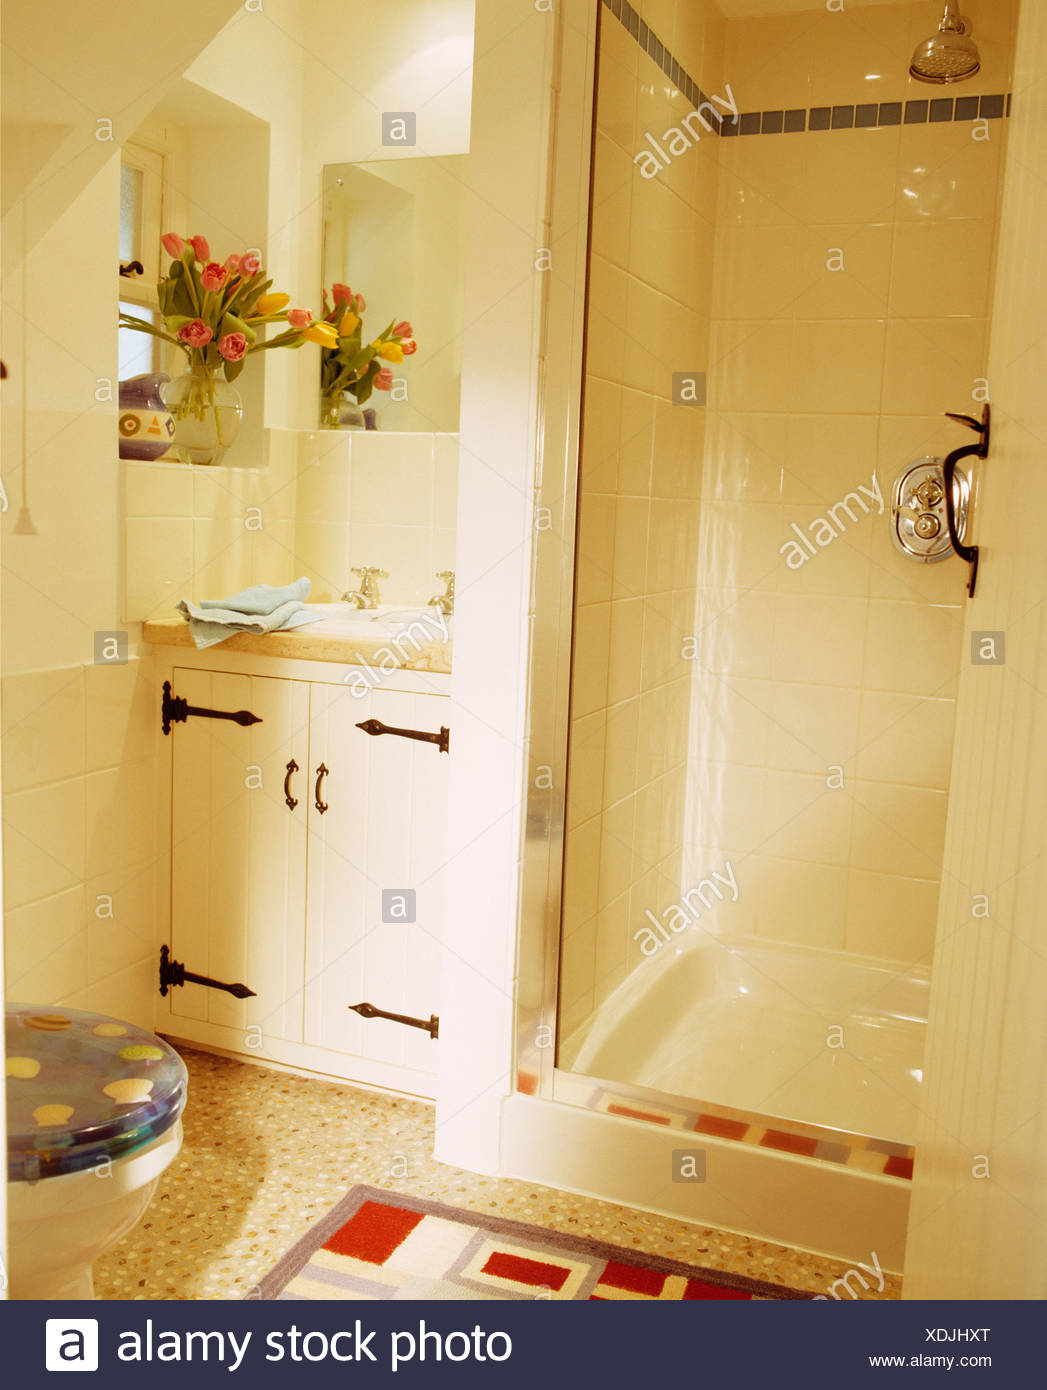 White tiled shower cabinet in small coastal bathroom Stock Photo ...